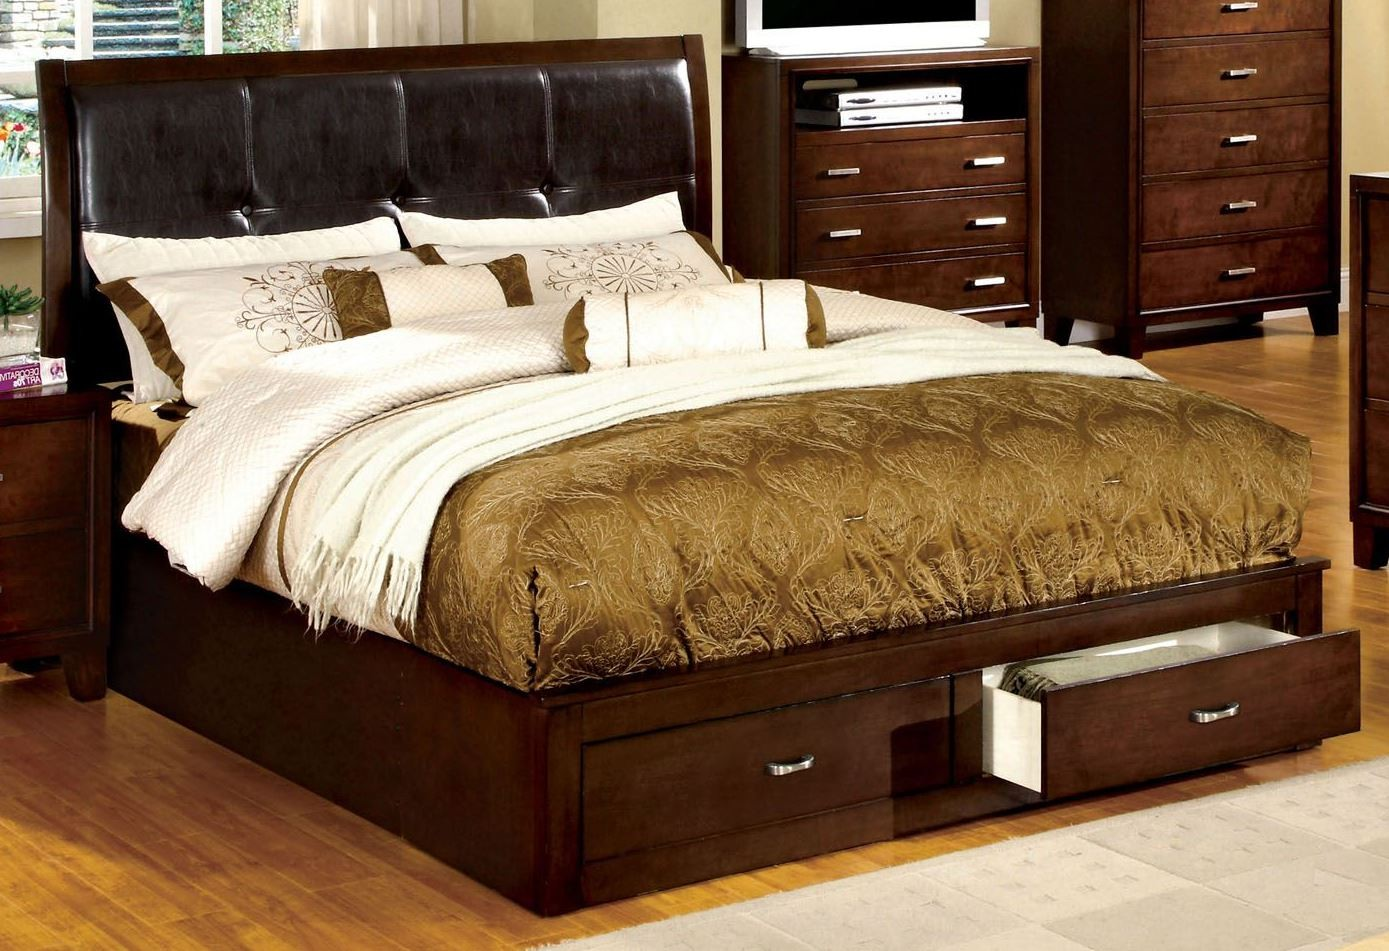 Enrico Iii Brown Cherry Leatherette Cal King Storage Bed From Furniture Of America Cm7066ck